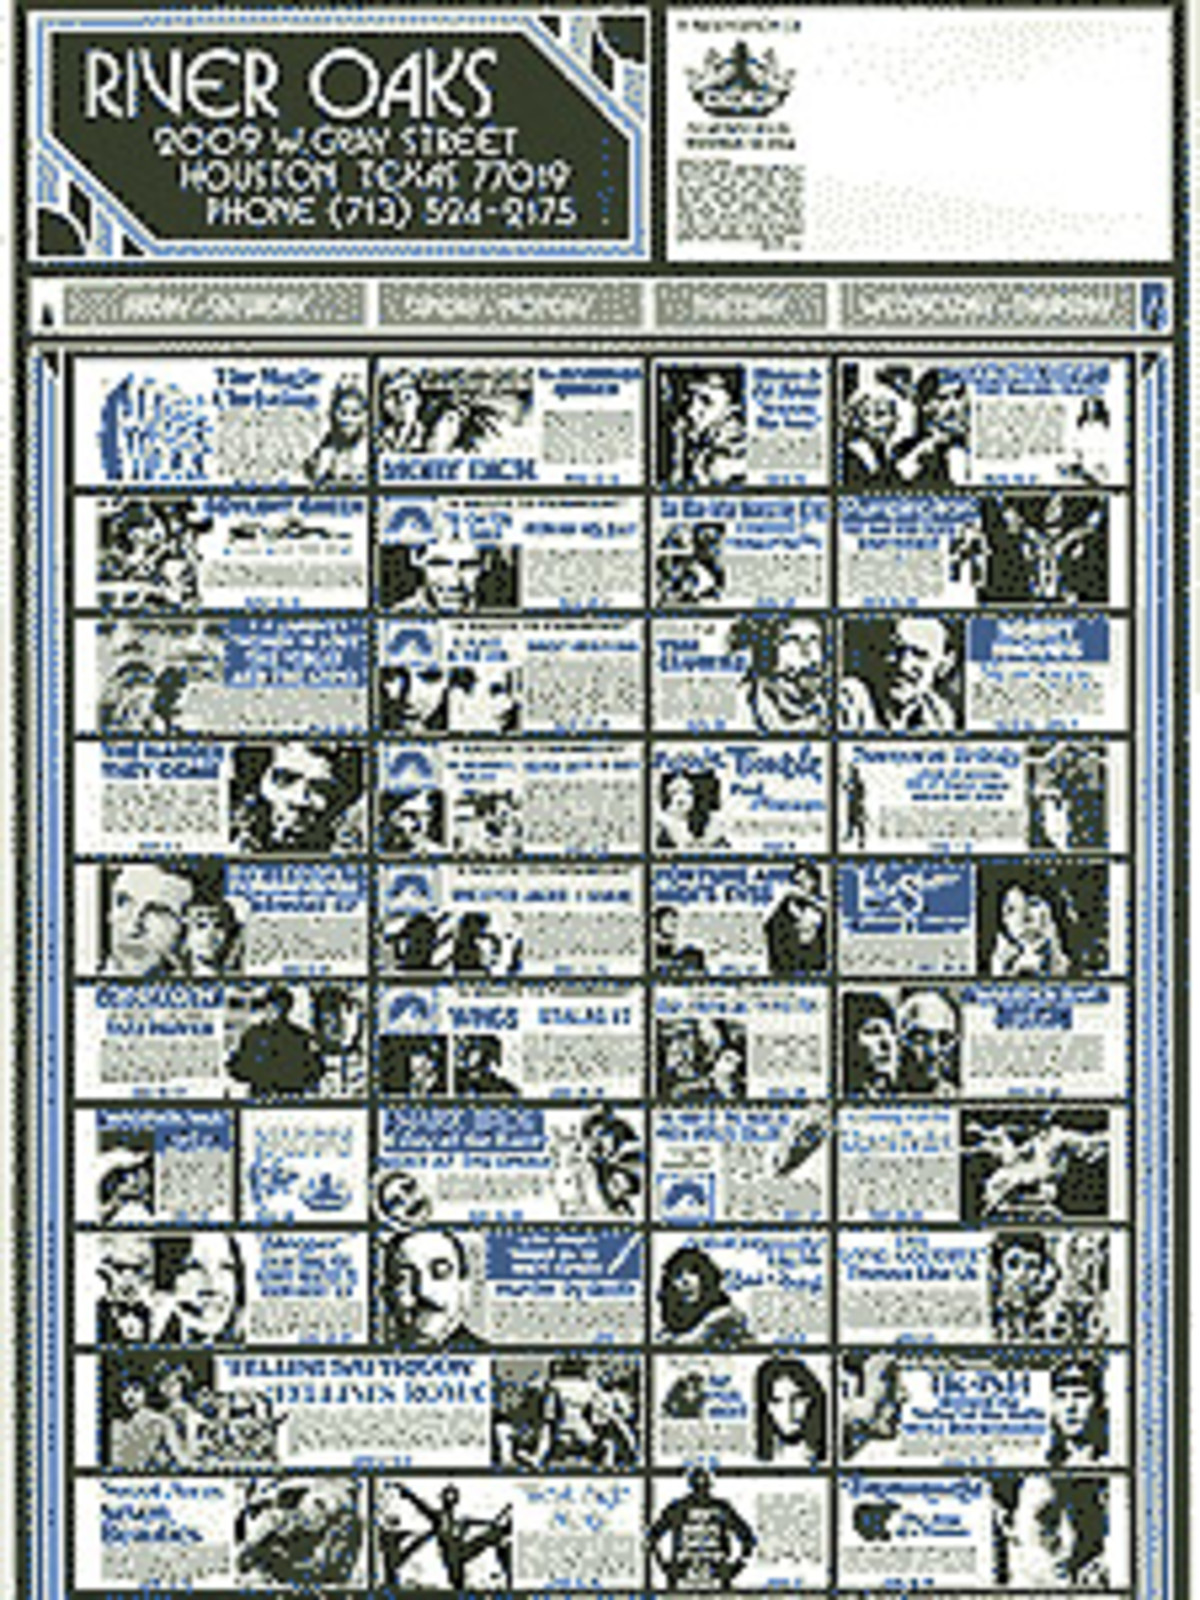 News_River Oaks Theatre_schedule_David Welling collection